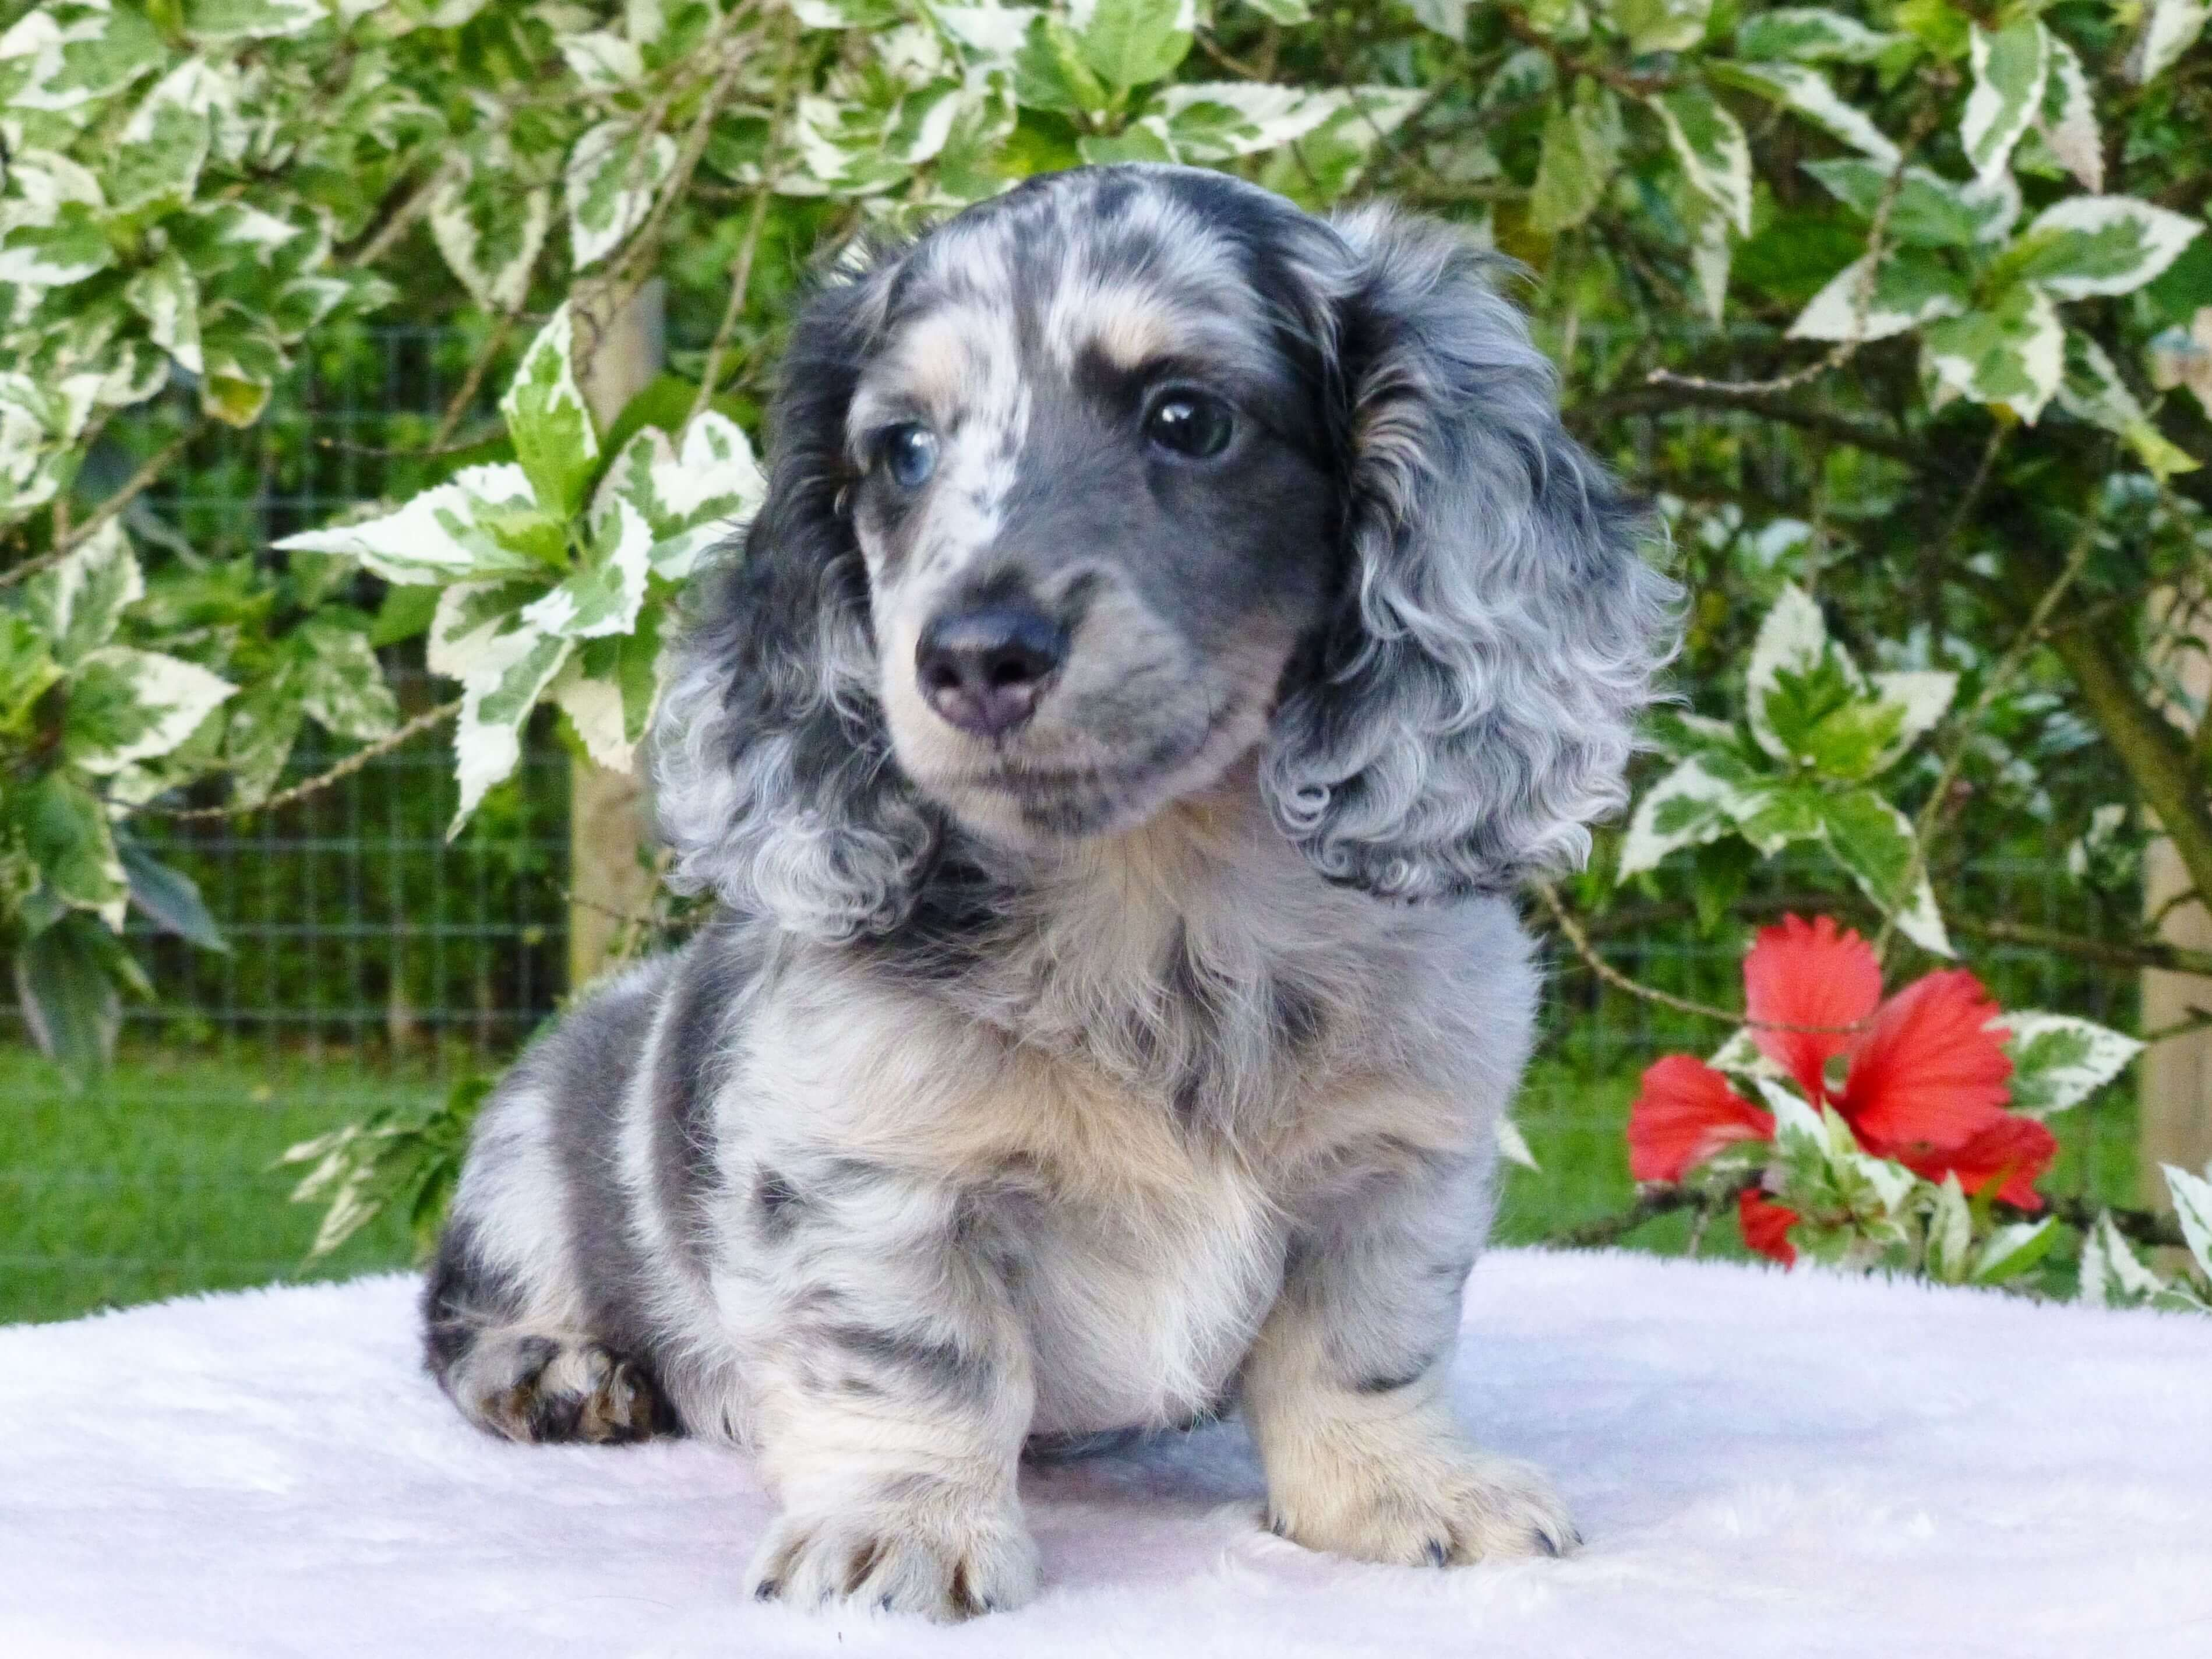 We Are Here To Give You Some Amazing Facts About This Cute Breed